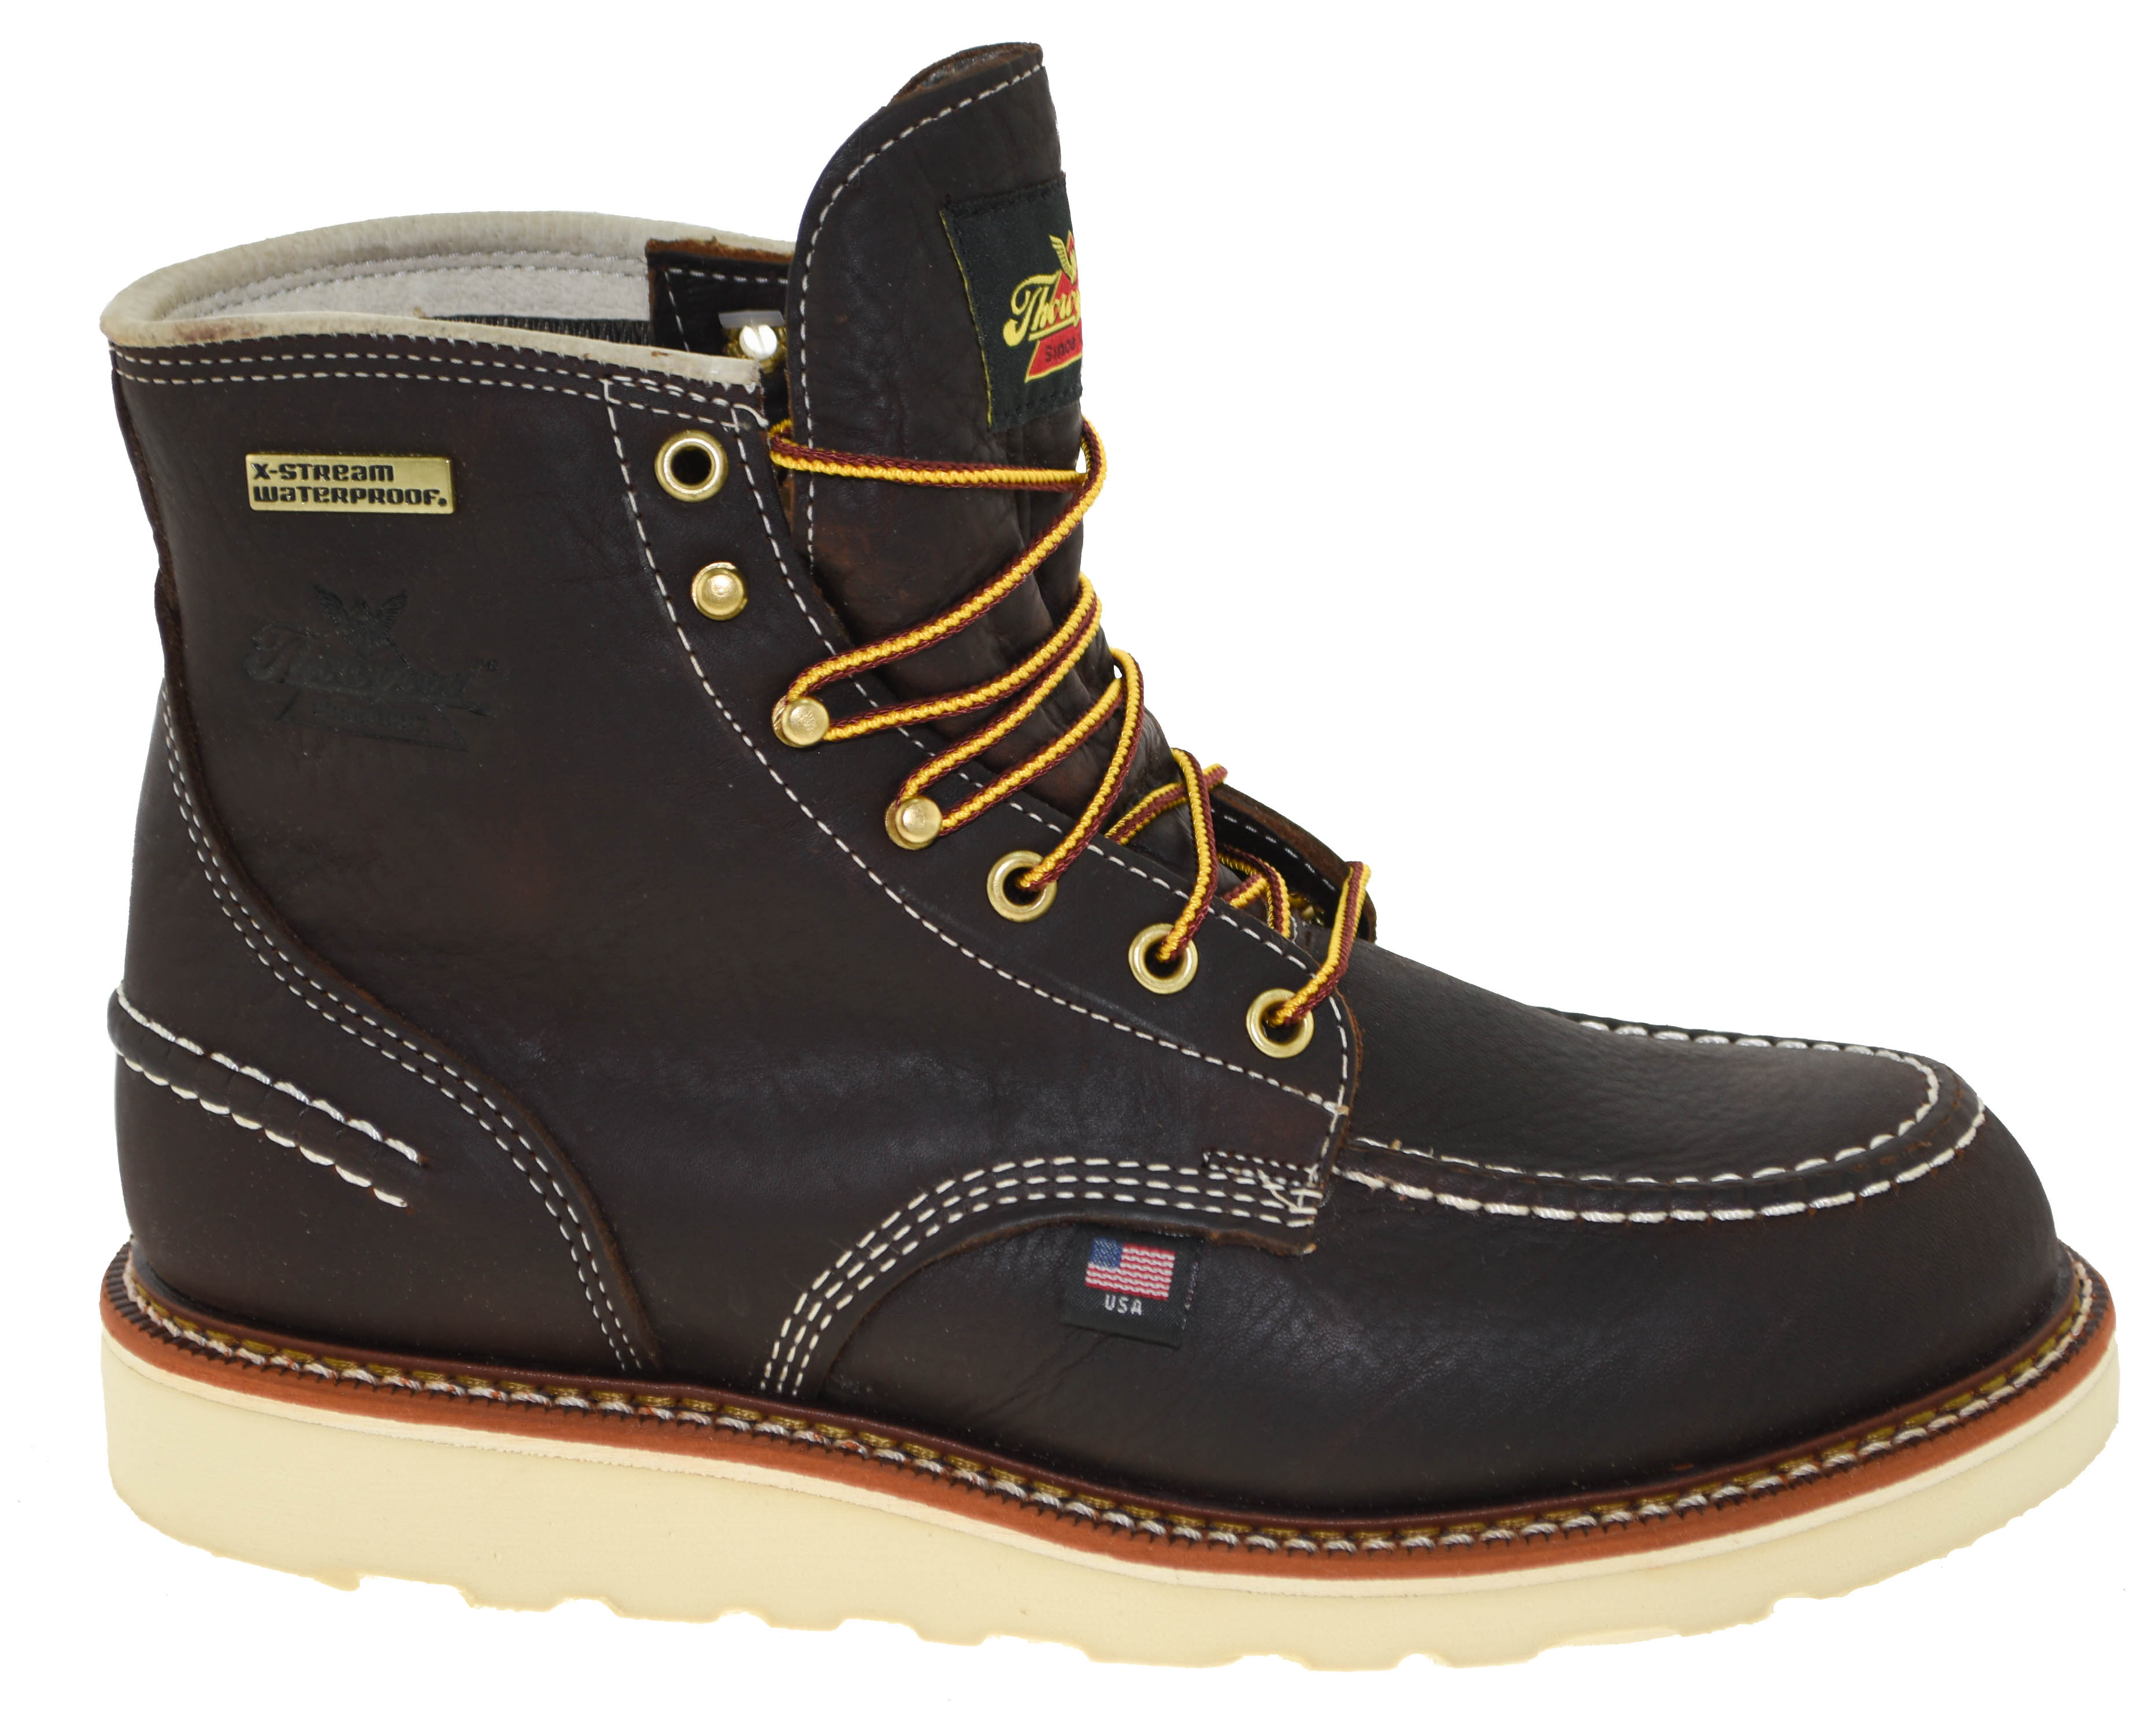 5bf2e42098f Details about Thorogood Men's Waterproof 1957 Moc Toe 6